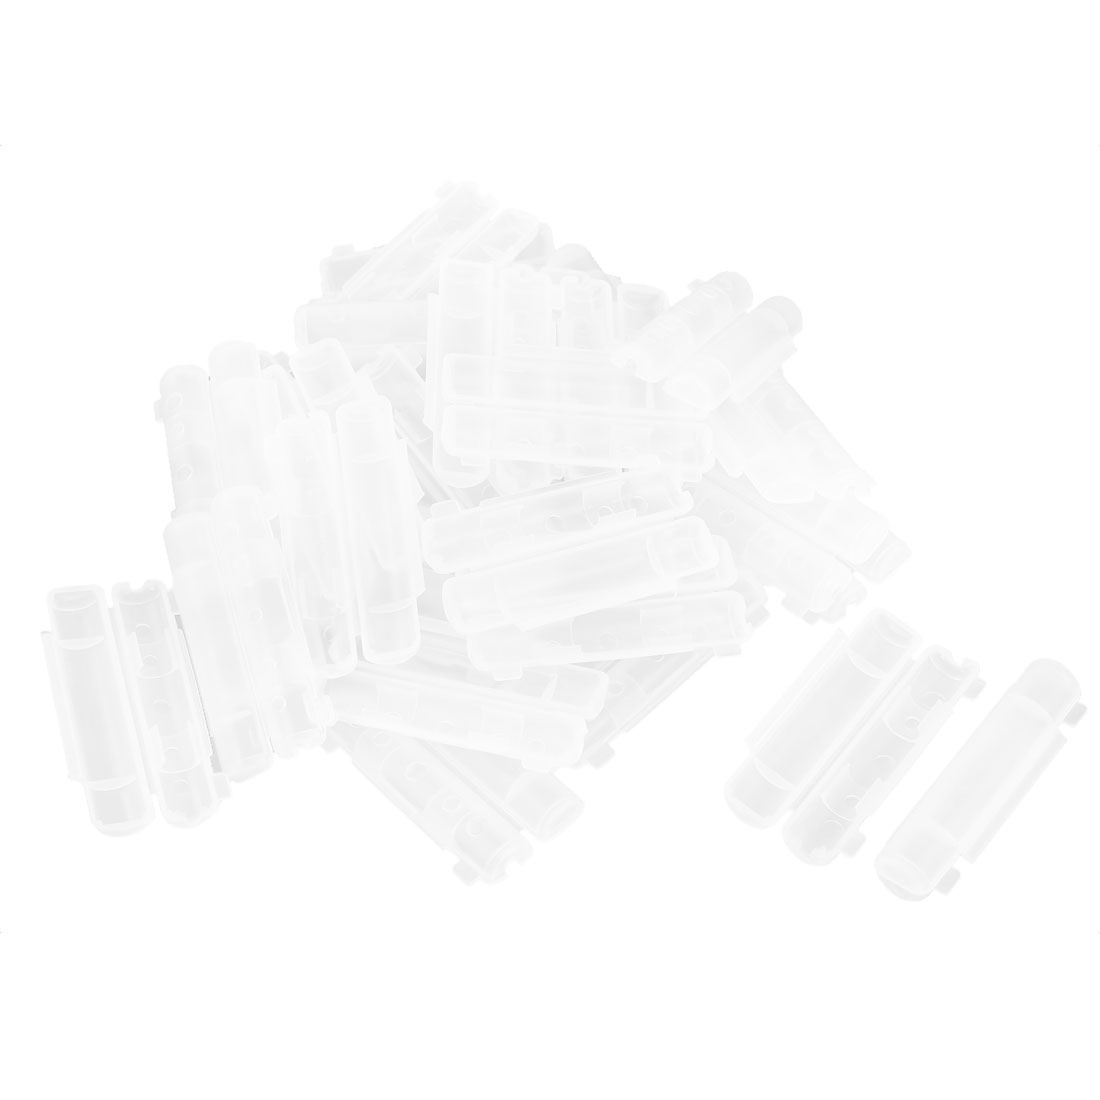 50 Pcs Clear Plastic PCB Fuse Holder With Cover PCB/Panel Mount 55 x 30mm